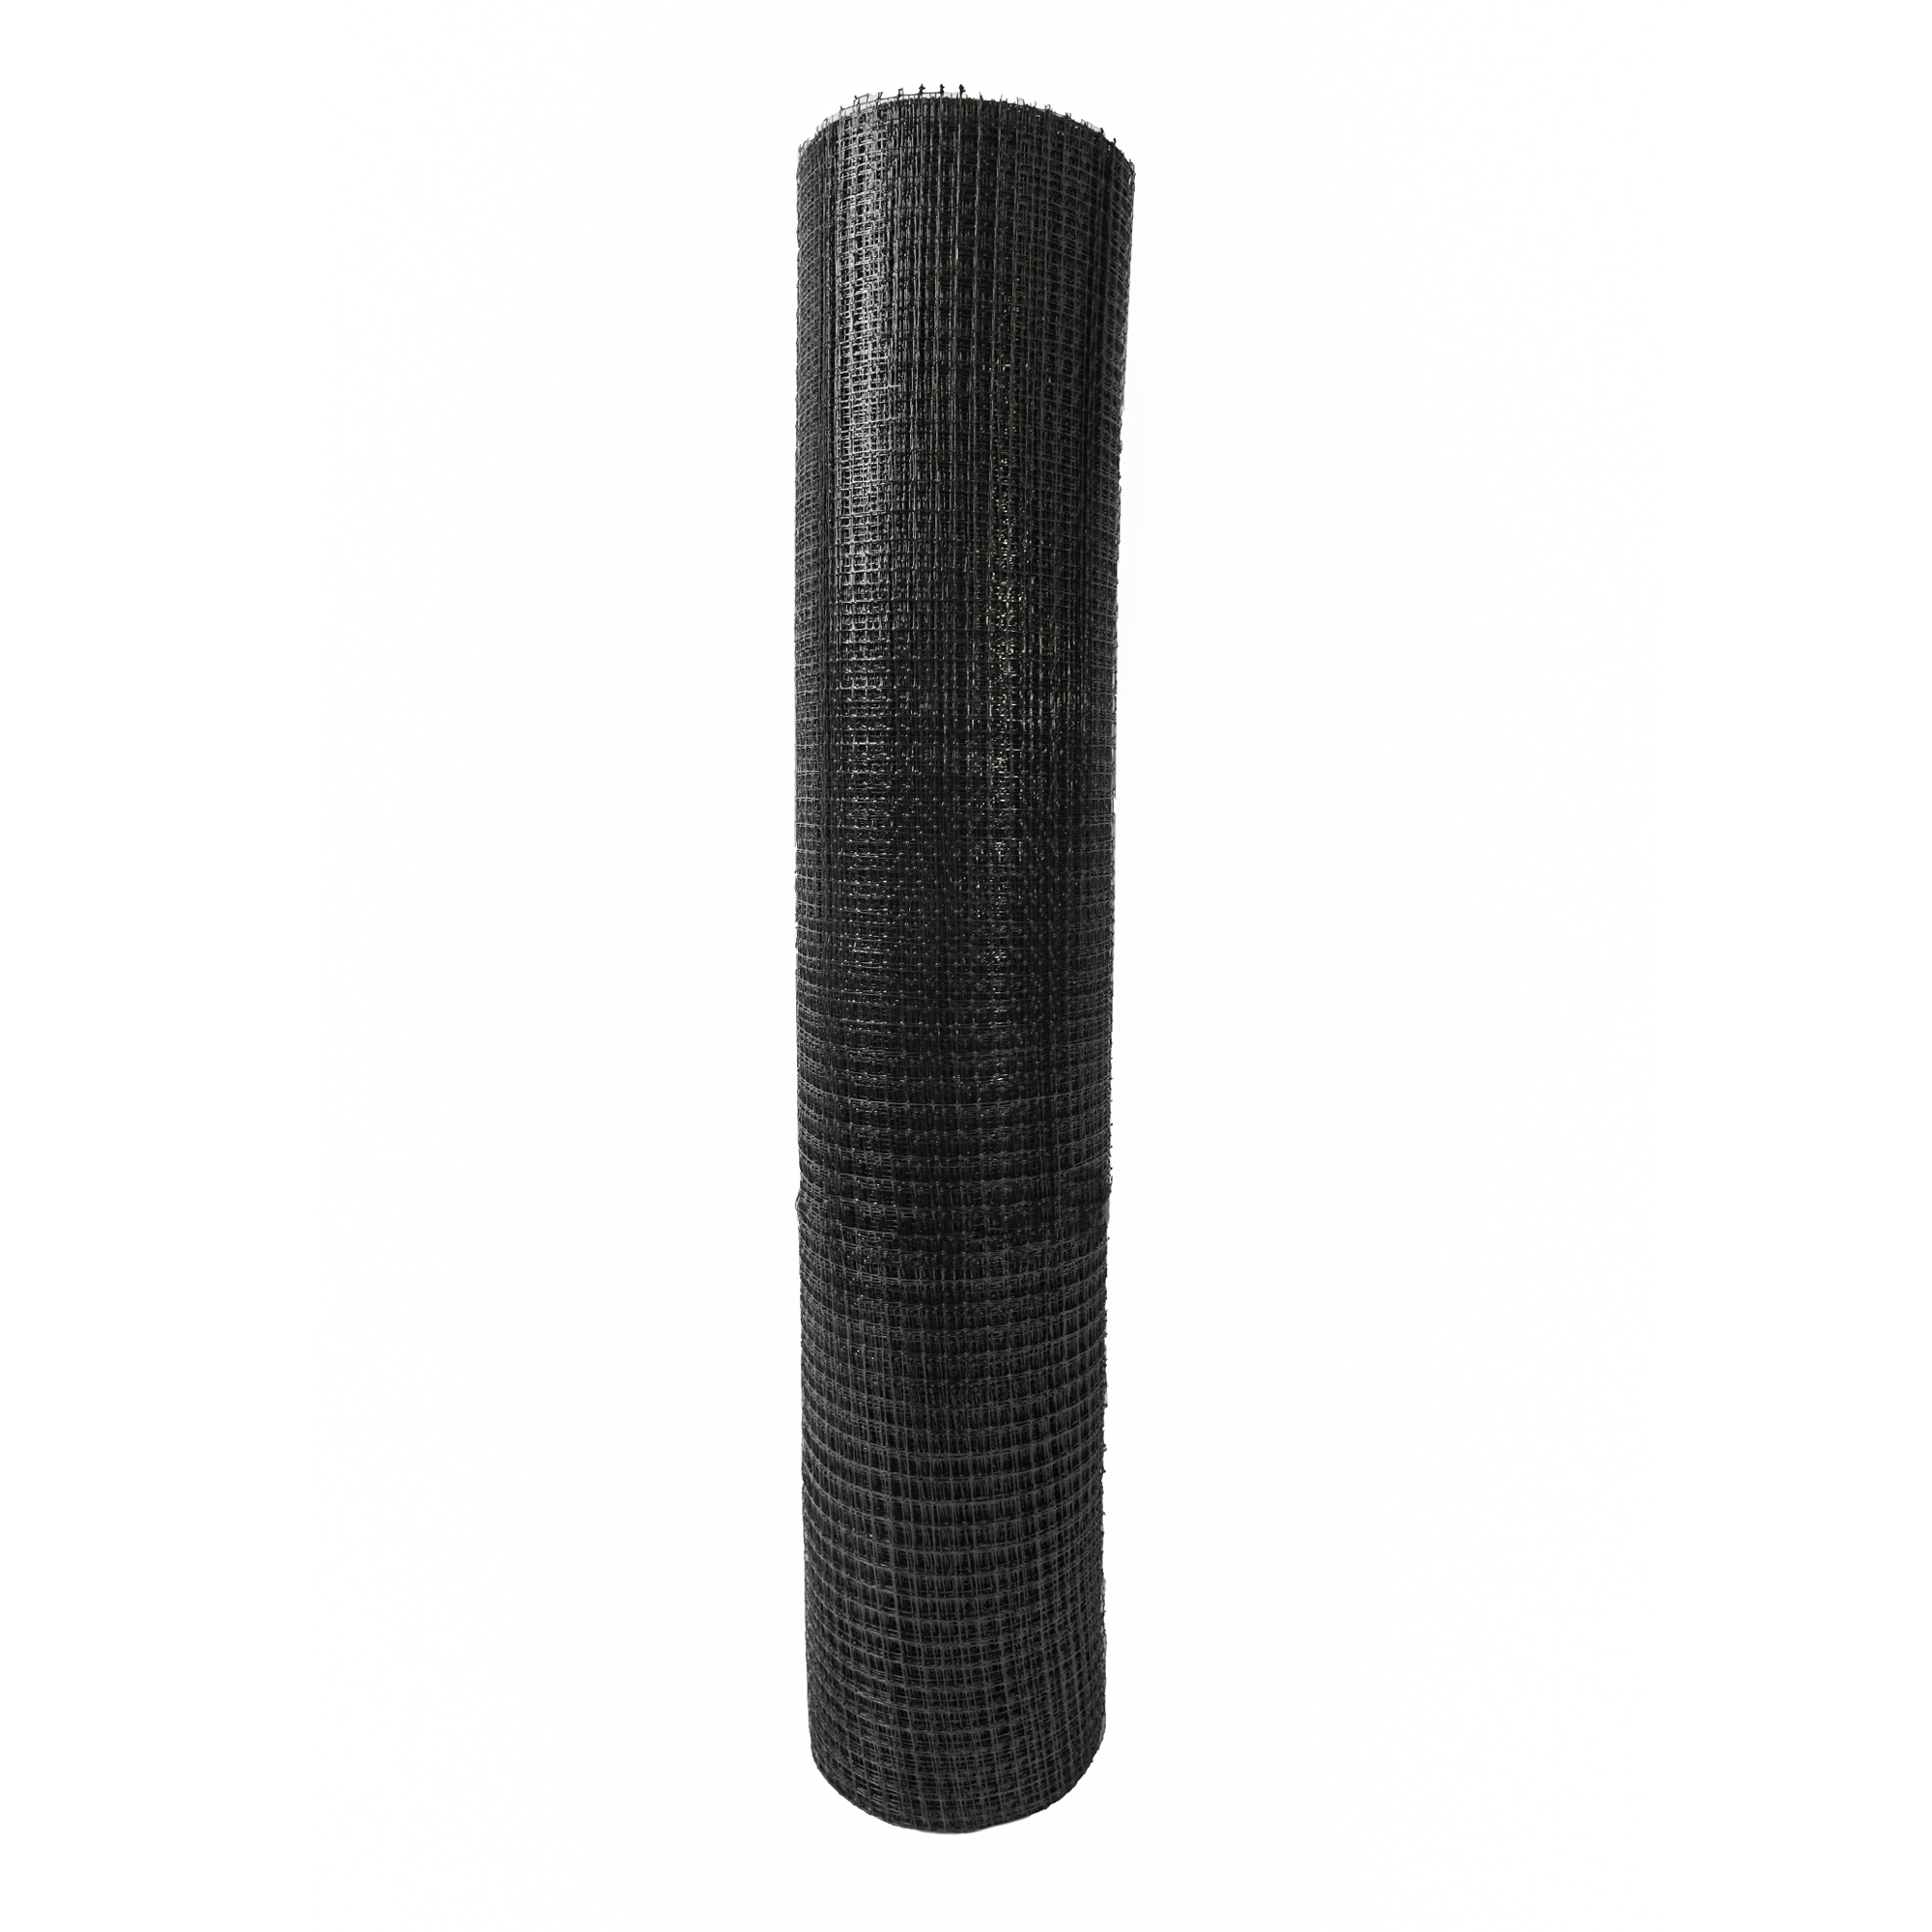 full-roll-of-black-game-bird-netting